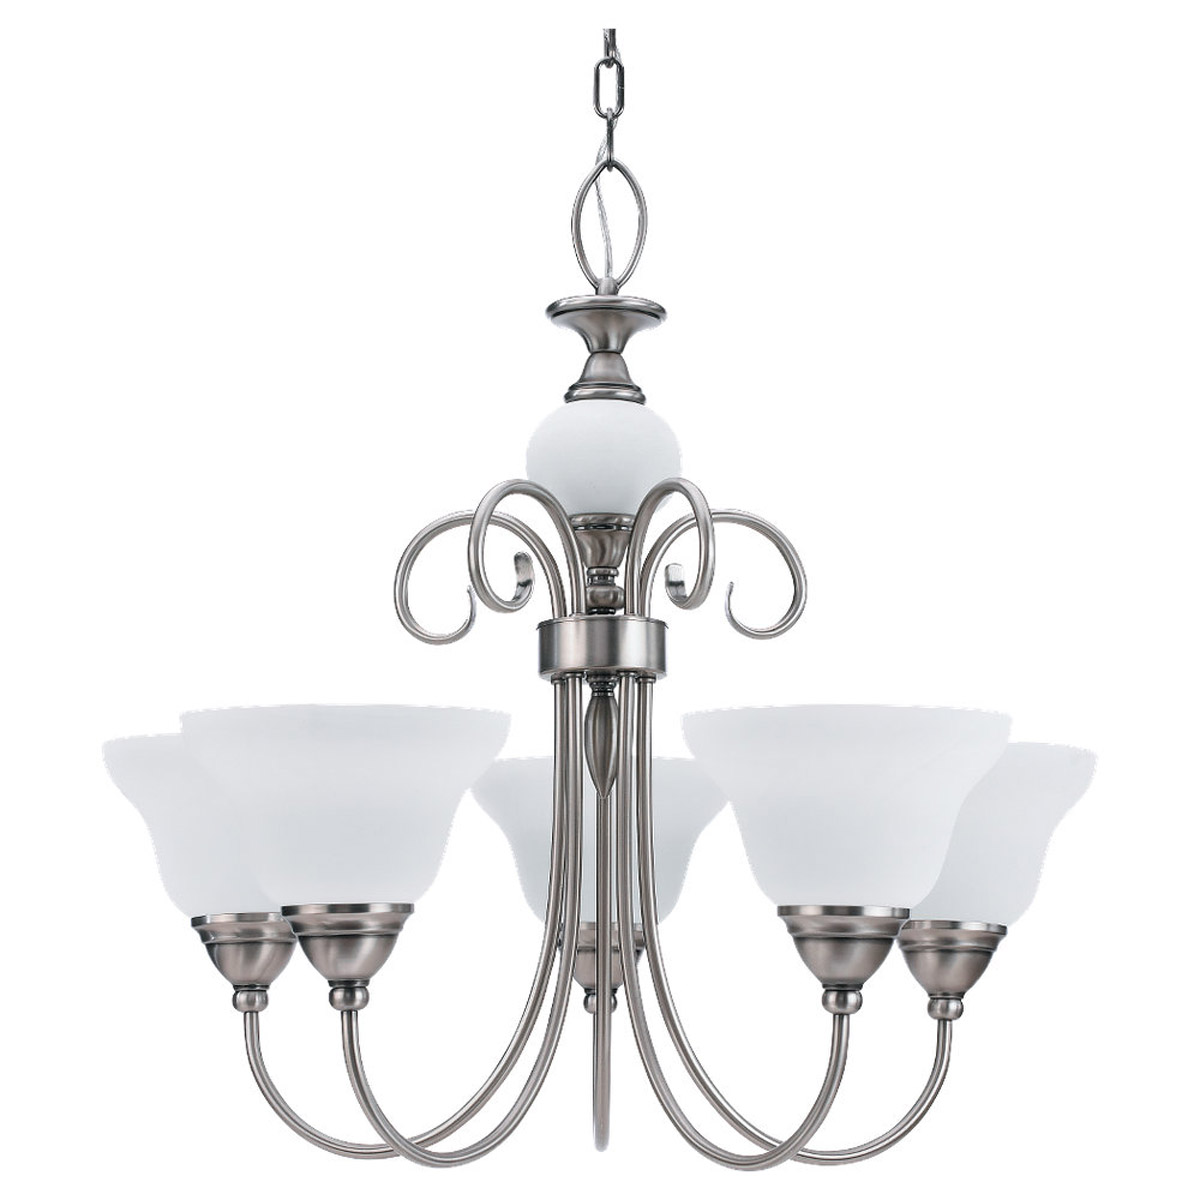 Sea Gull Lighting Montclaire 5 Light Chandelier in Antique Brushed Nickel 31106BLE-965 photo